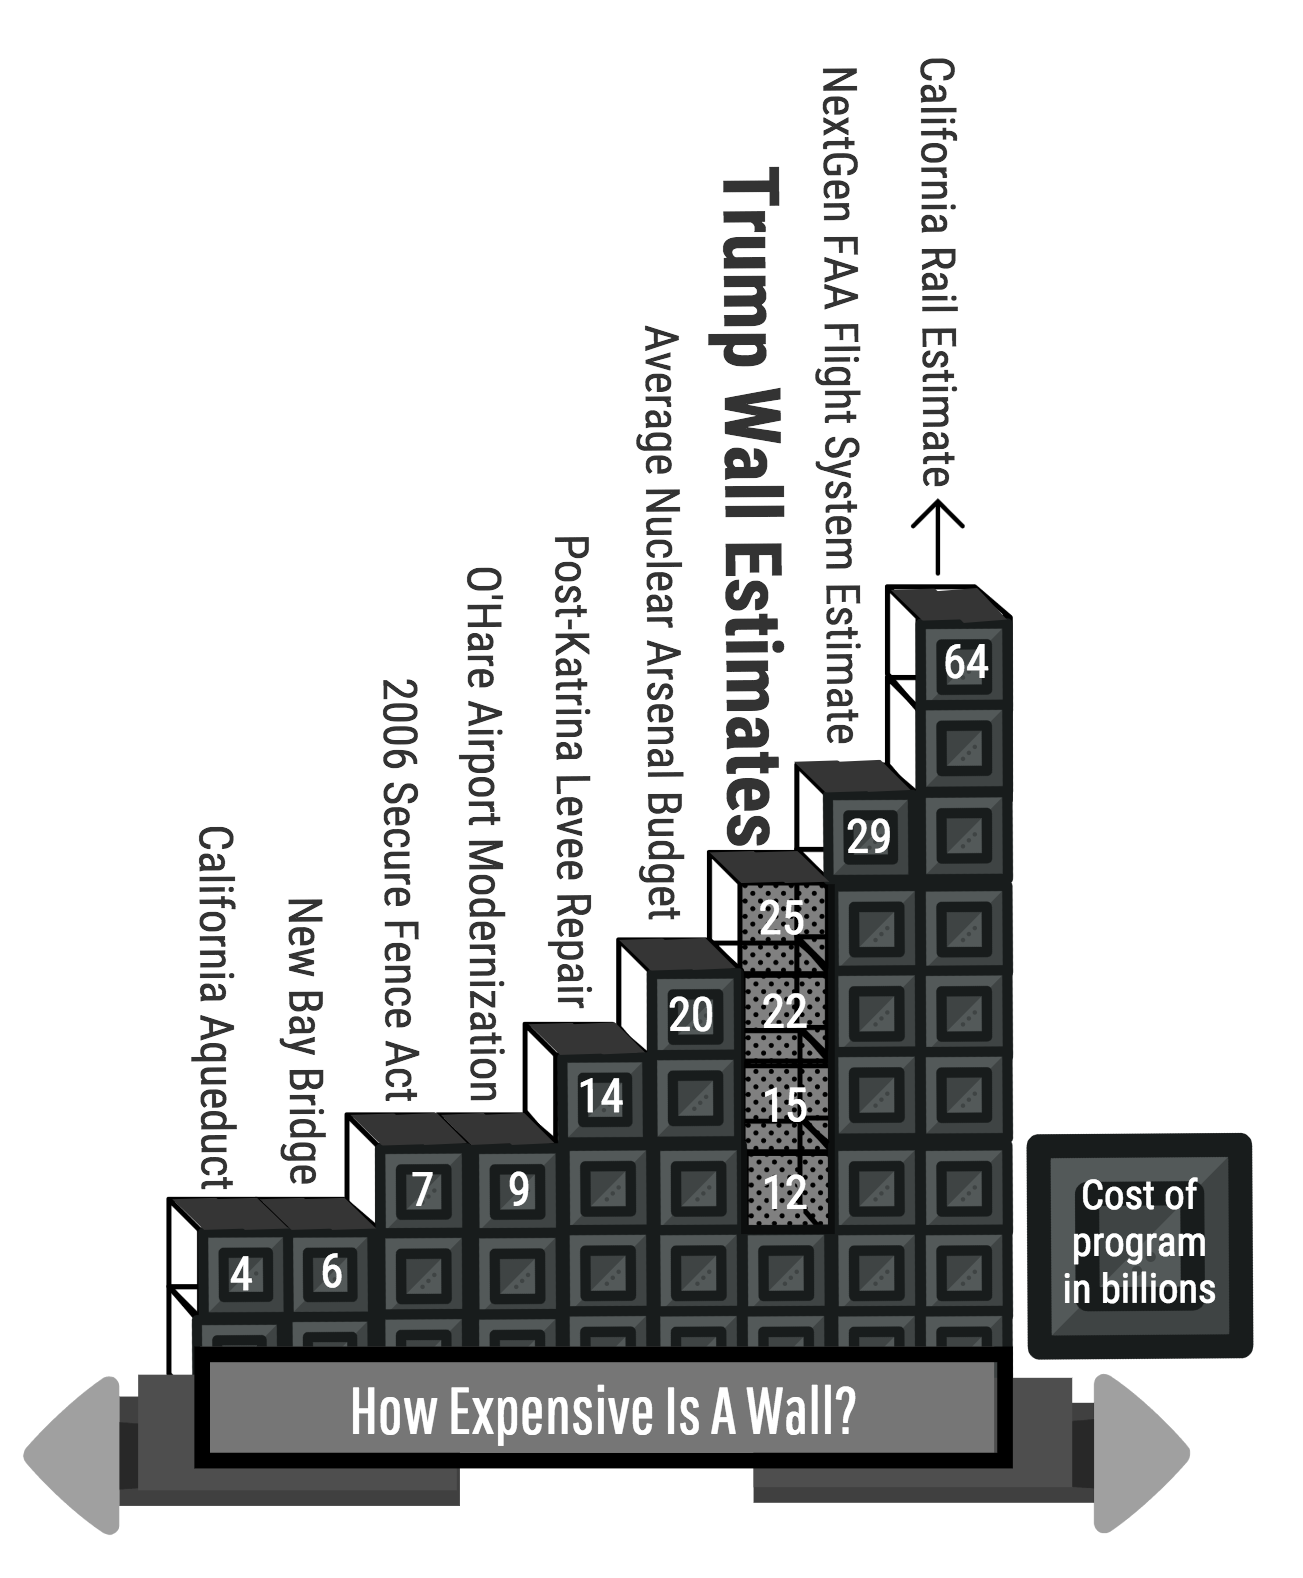 Infographic comparing the costs of various government programs to Trump's wall by Kian Nassre, Head of Infographics.